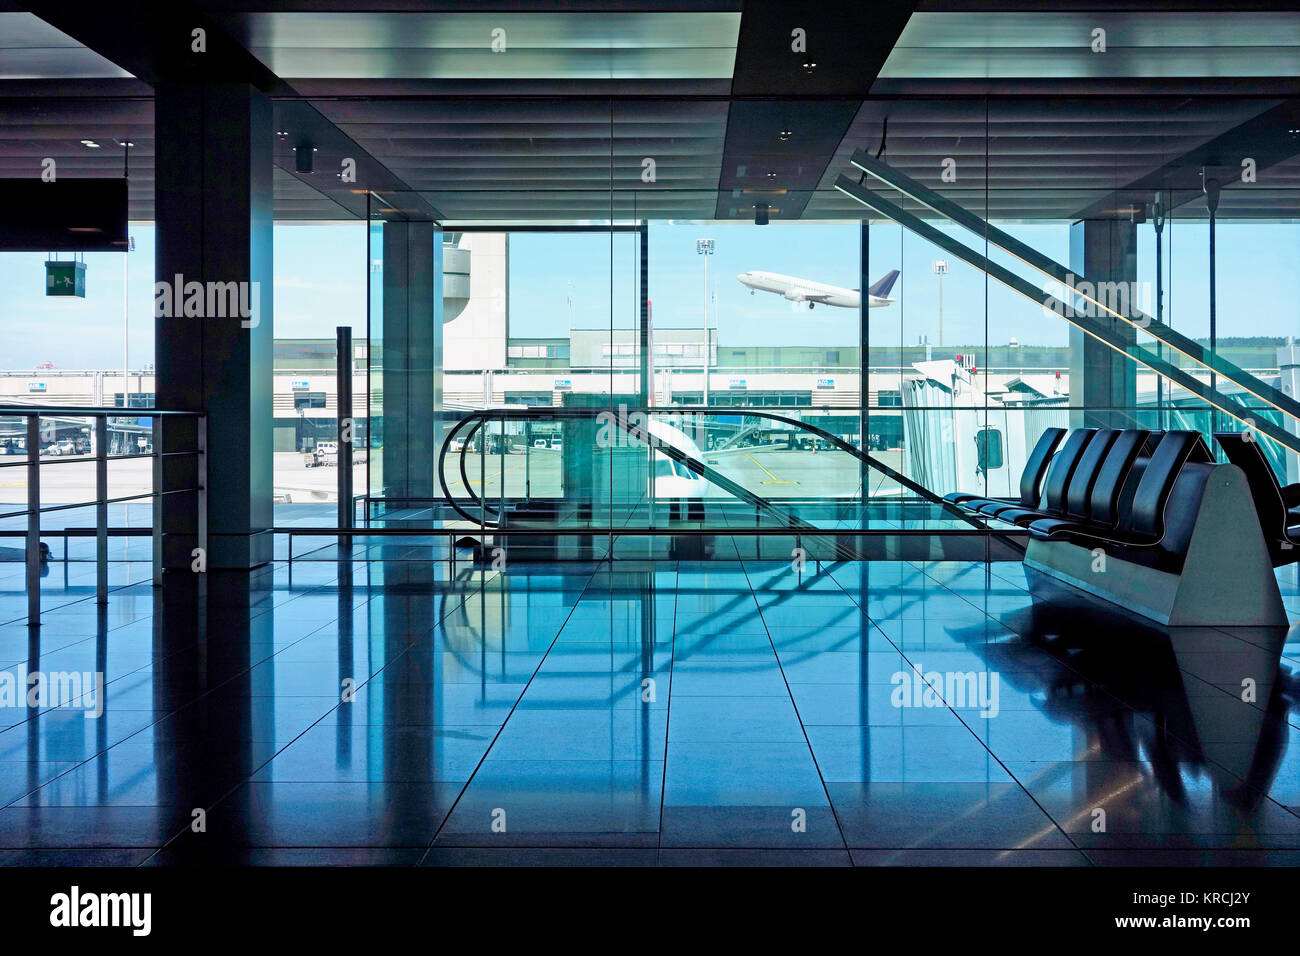 Empty Airport departure lounge with seating and escalators overlooking the runway with a waiting plane. - Stock Image